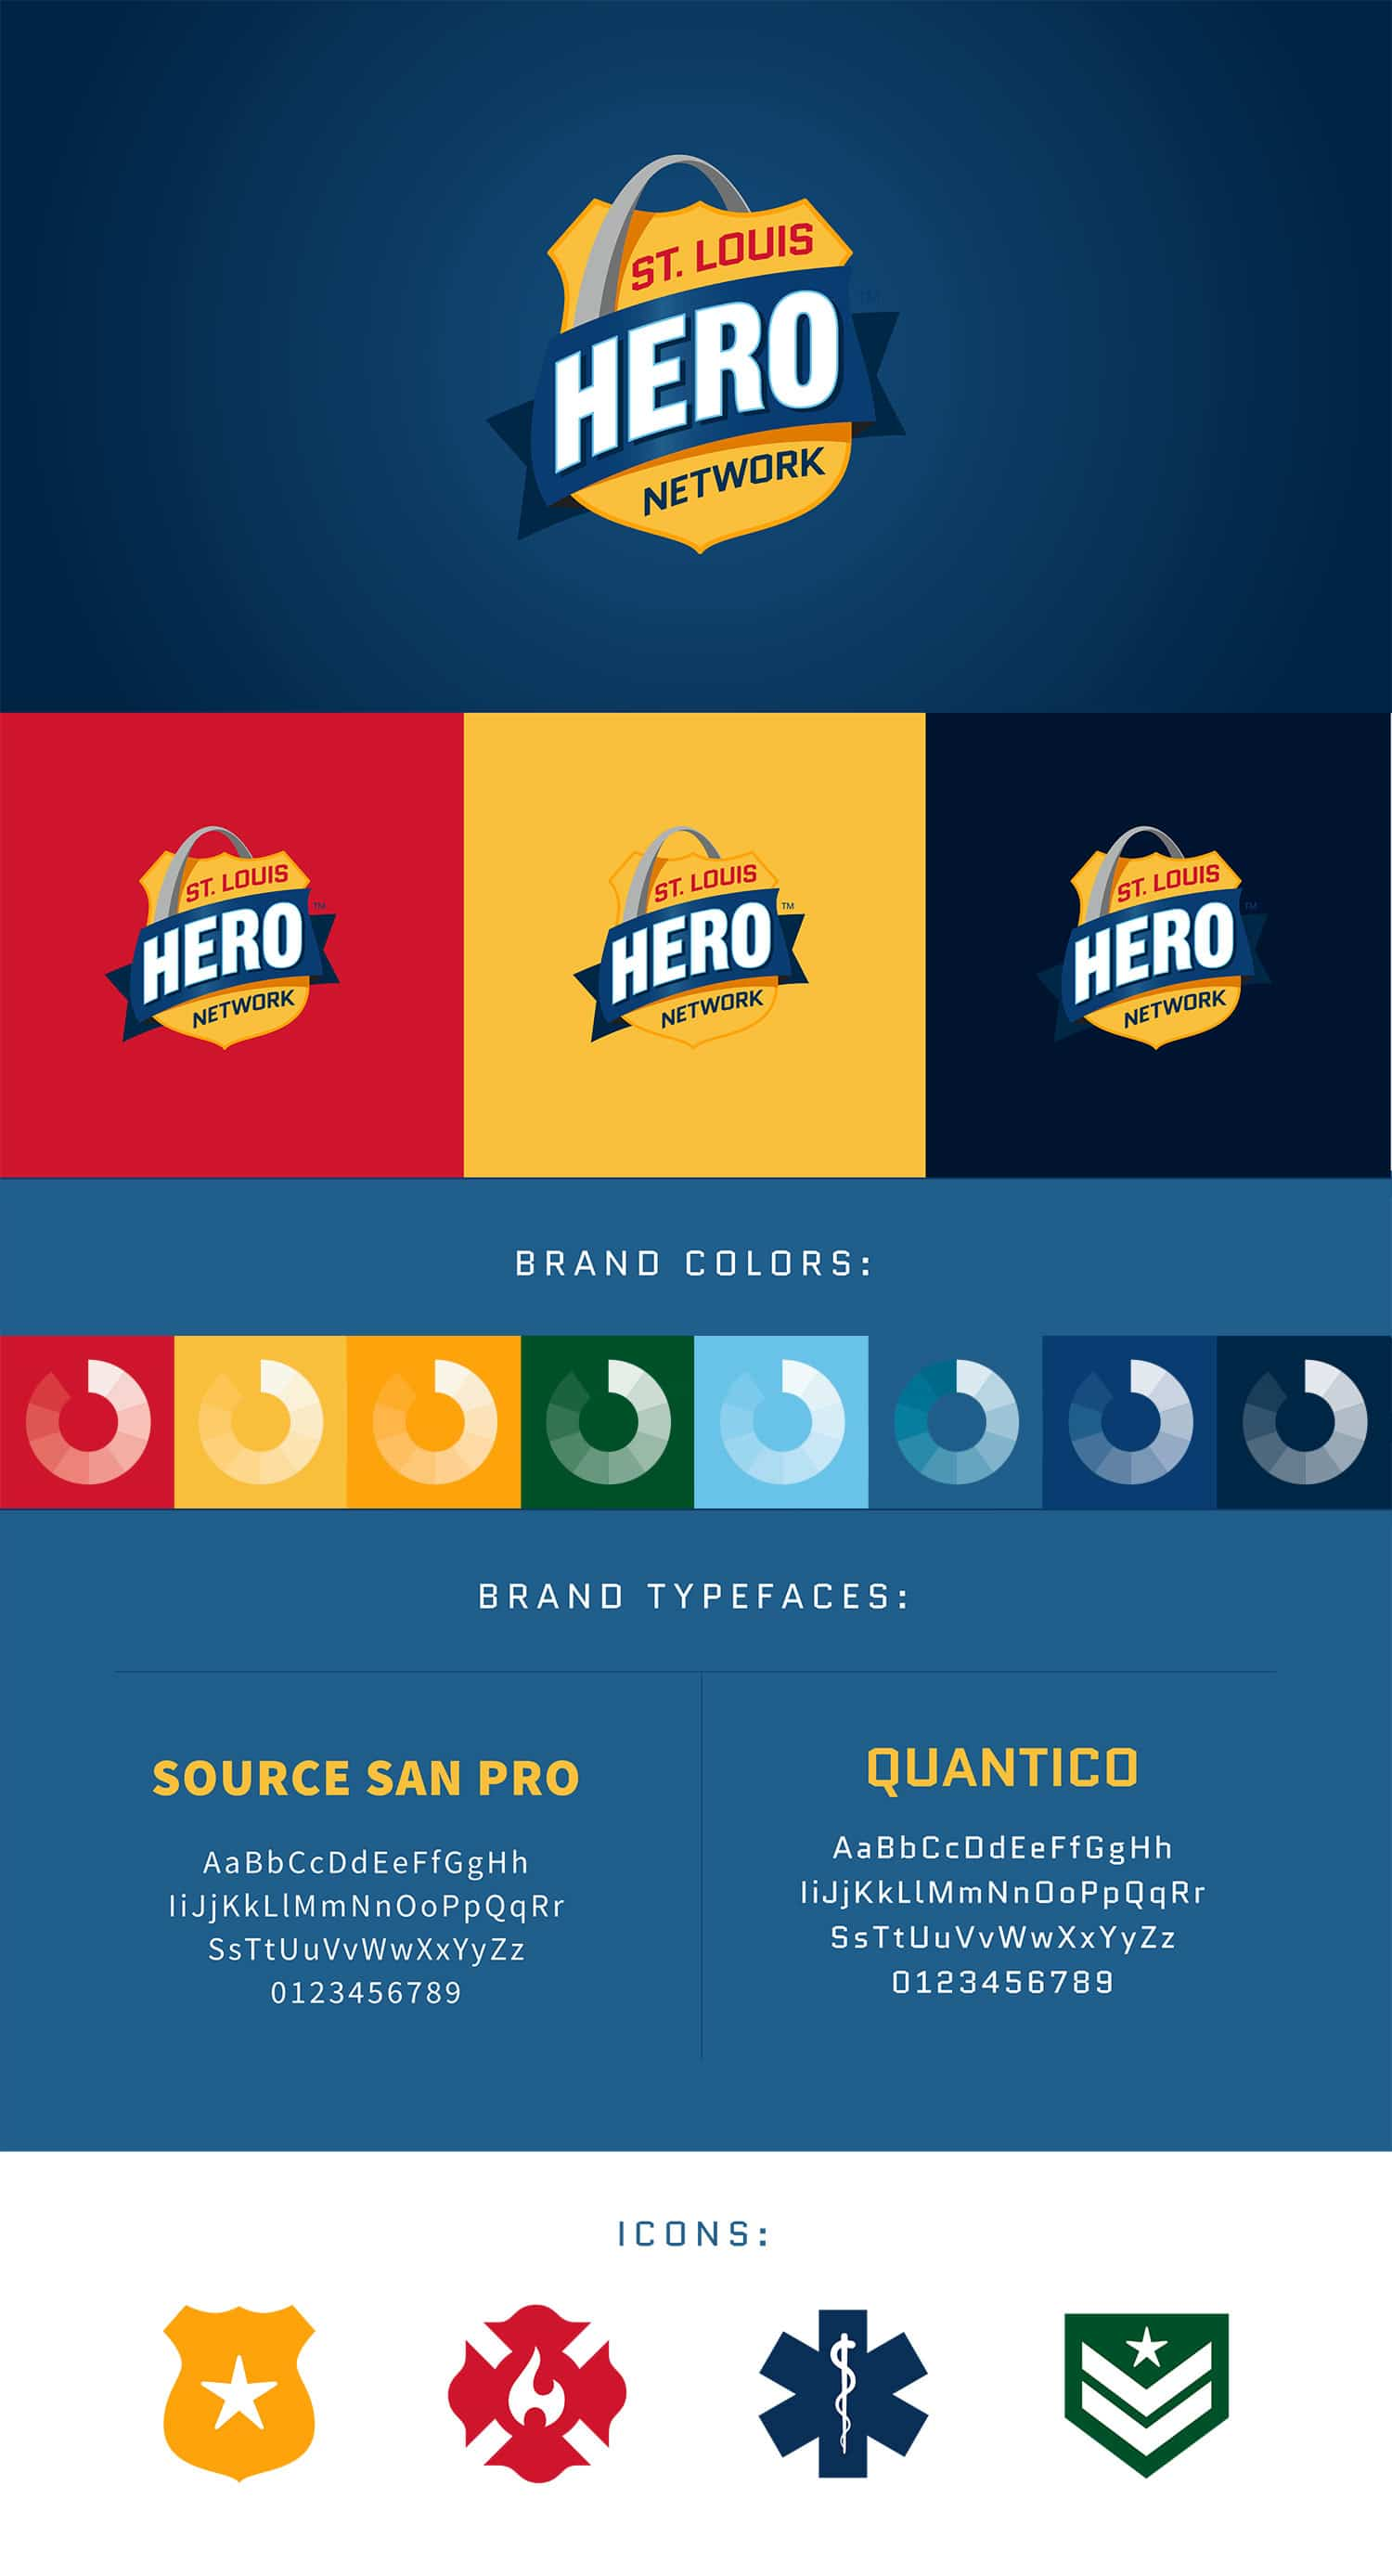 St. Louis Hero Network Logo guide